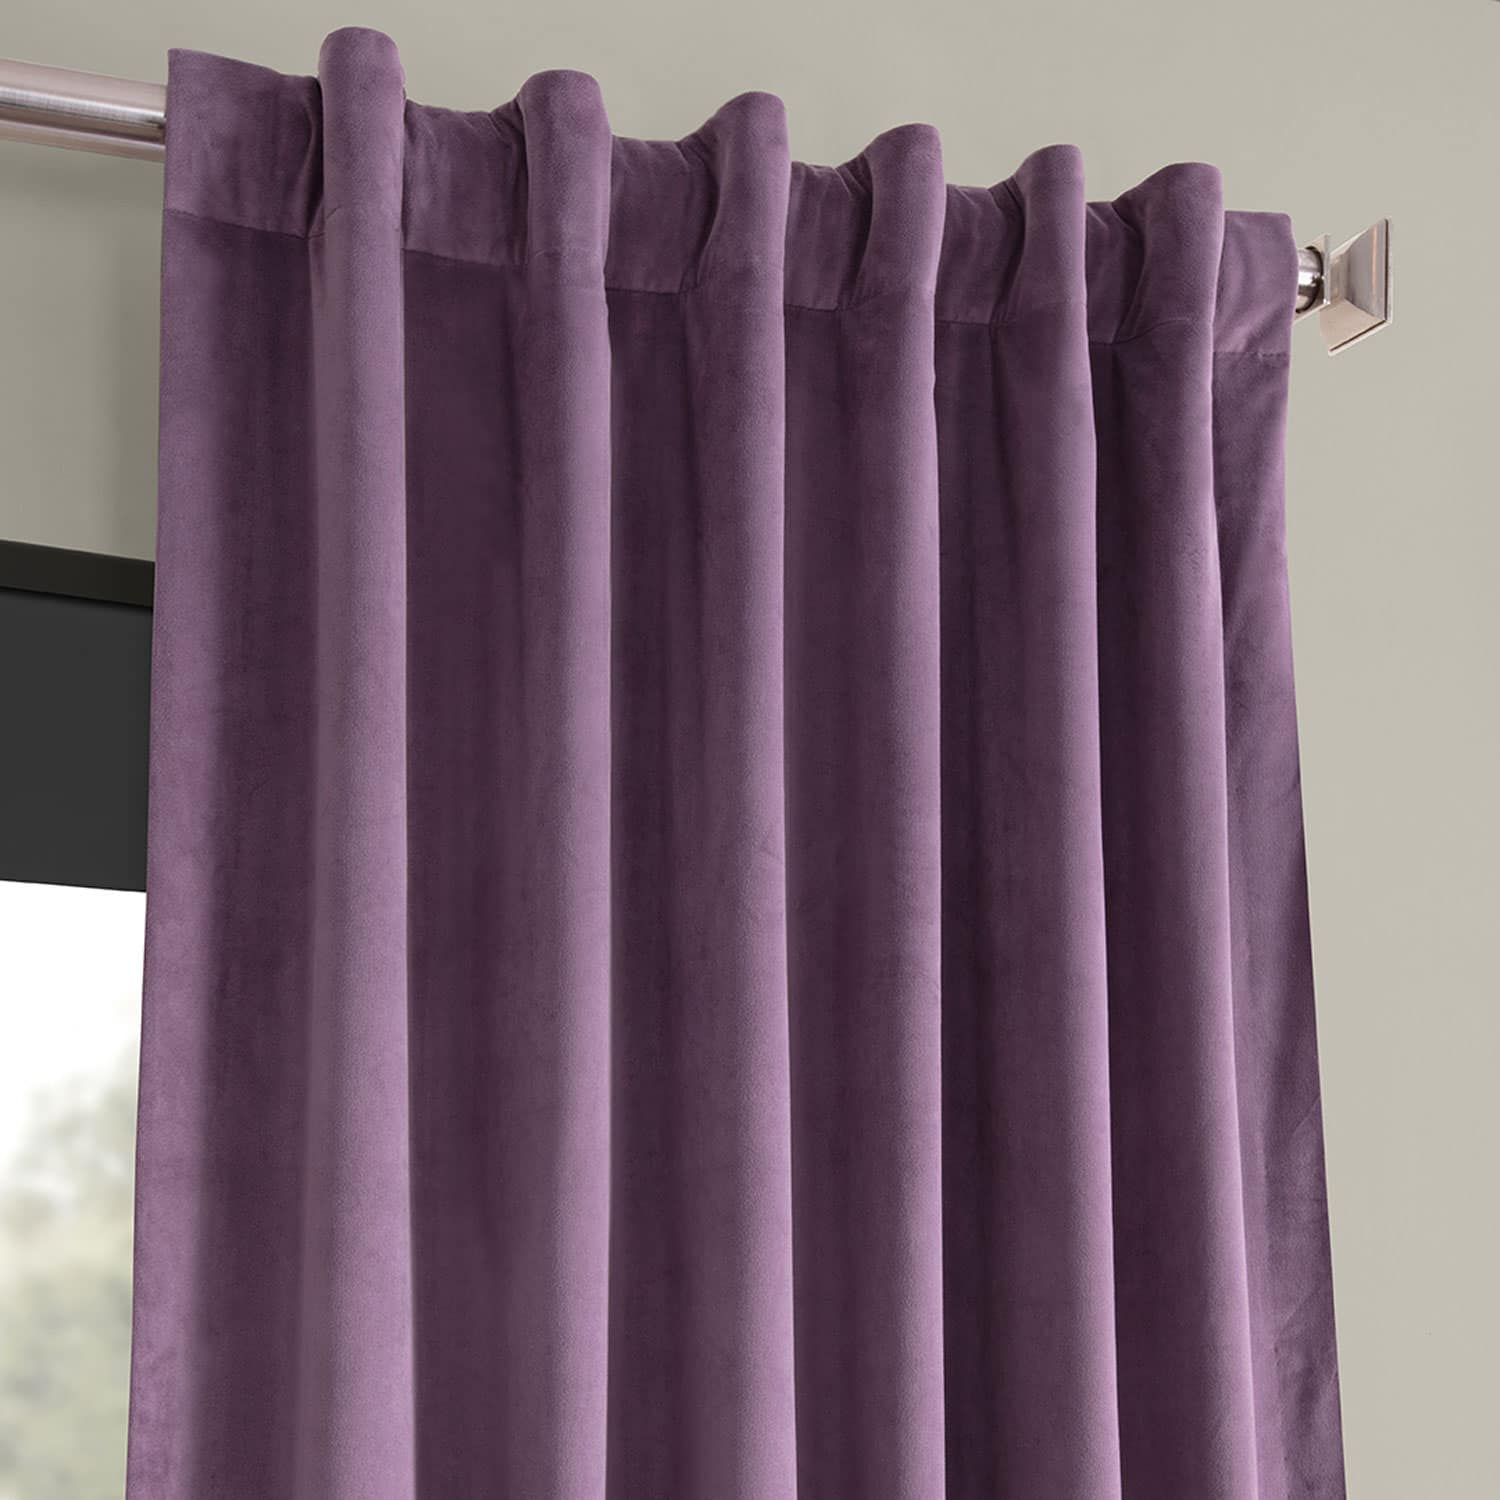 Signature Fresh Violet Blackout Velvet Curtain Throughout Signature Blackout Velvet Curtains (View 16 of 20)